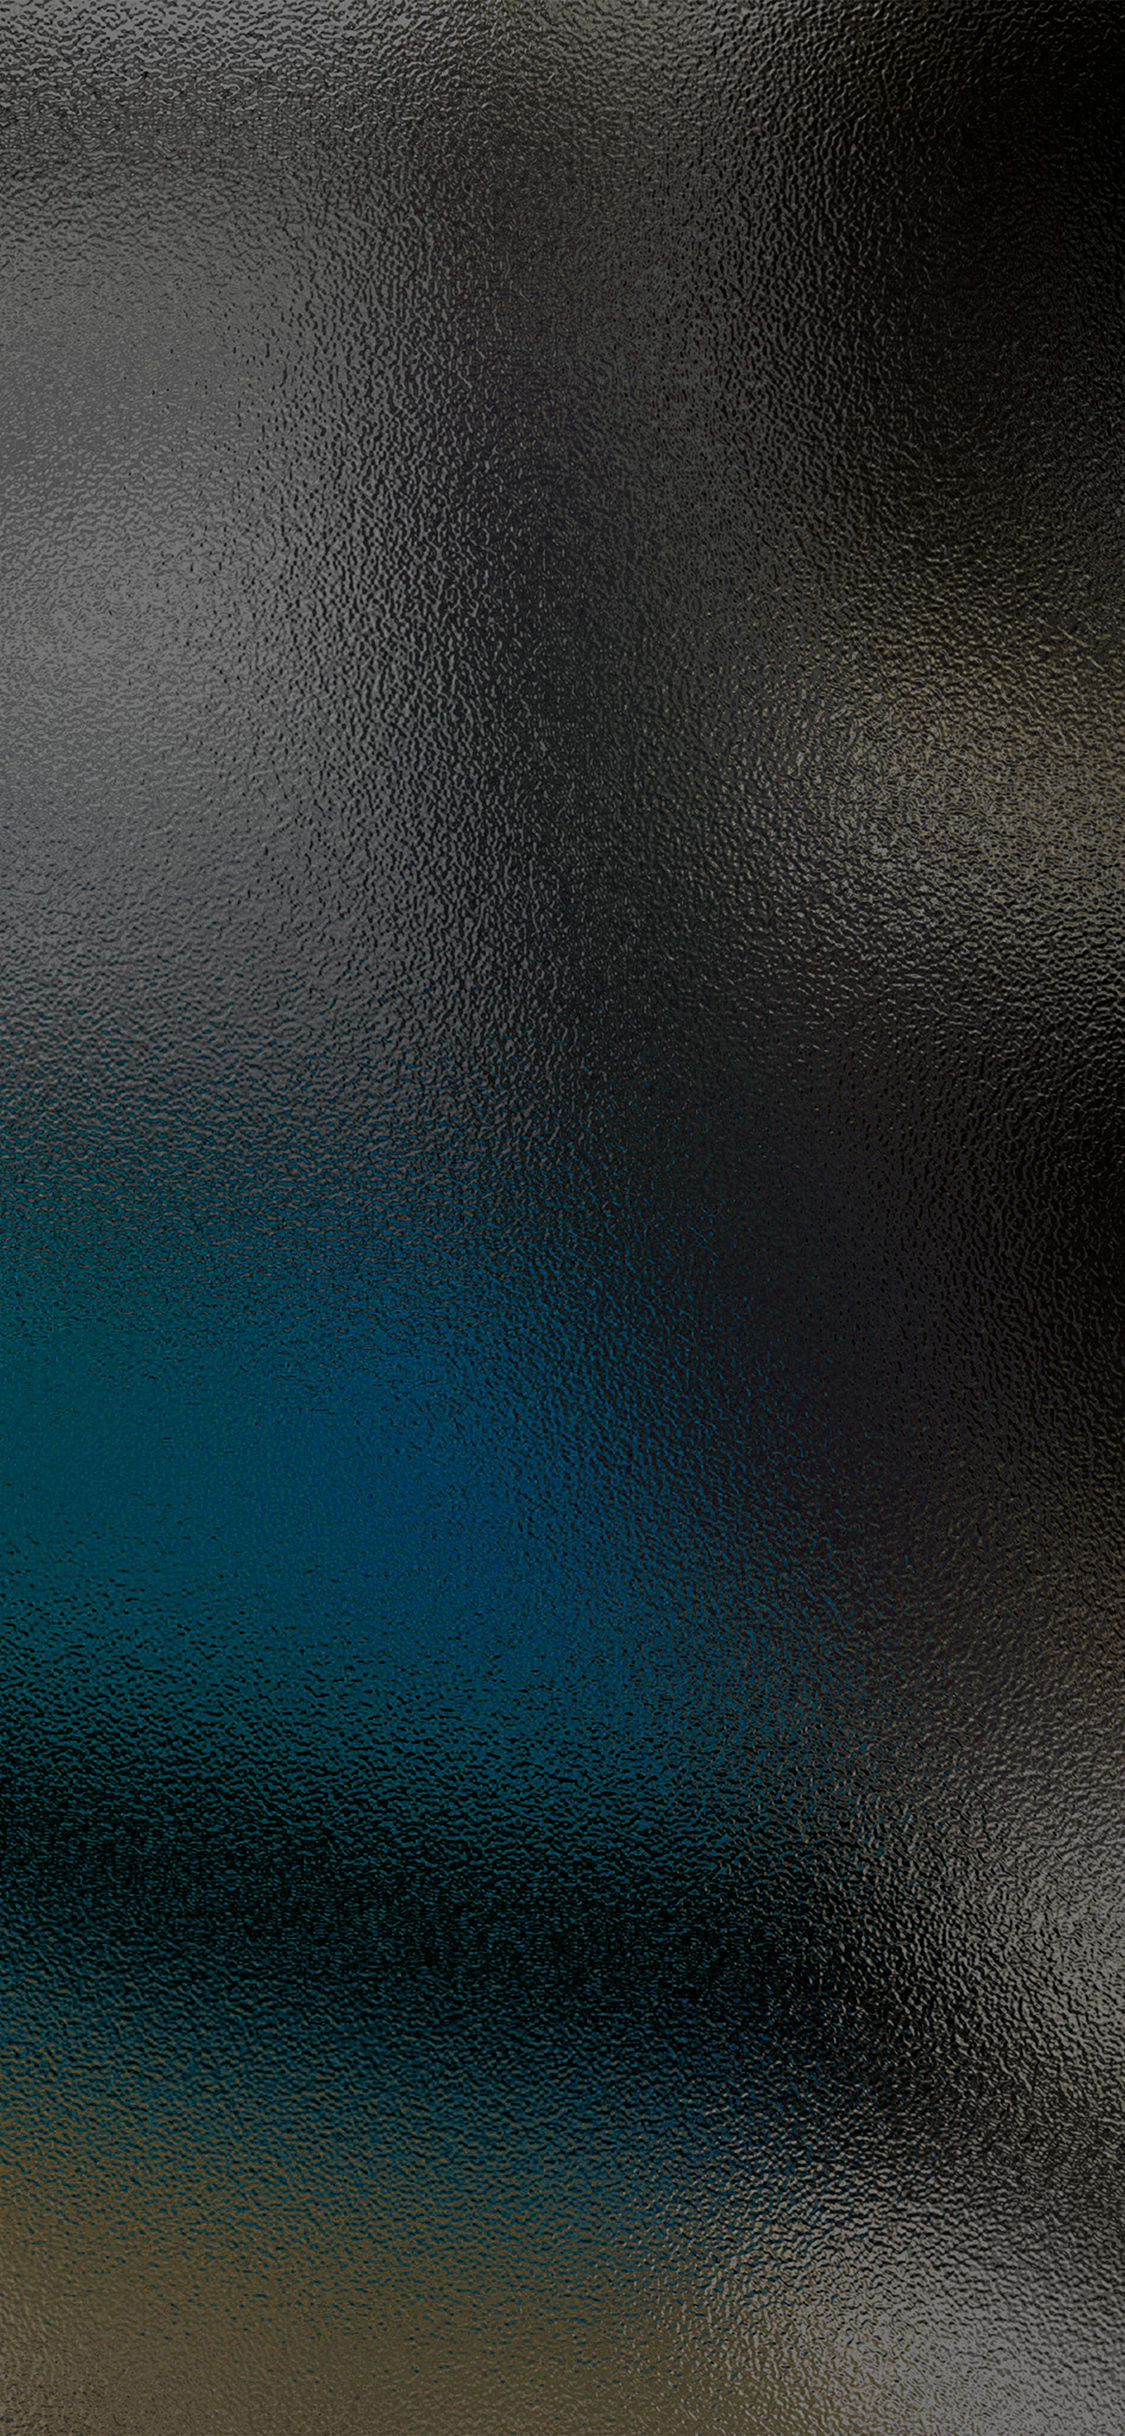 iPhonexpapers.com-Apple-iPhone-wallpaper-vs46-texture-window-light-pattern-blue